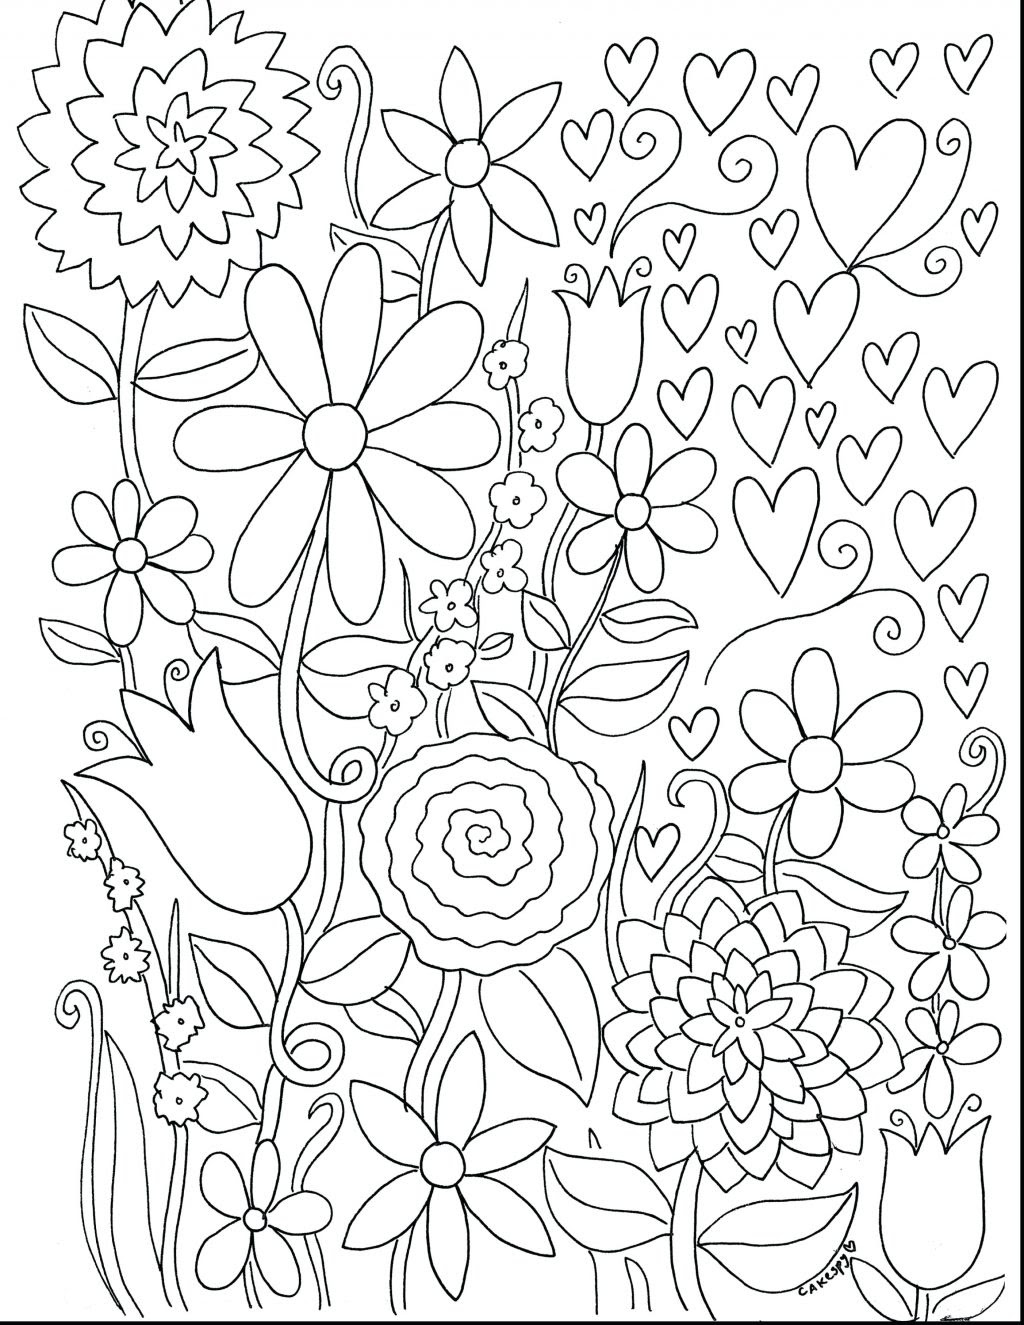 8800 Top Valentine Coloring Pages Crayola Download Free Images